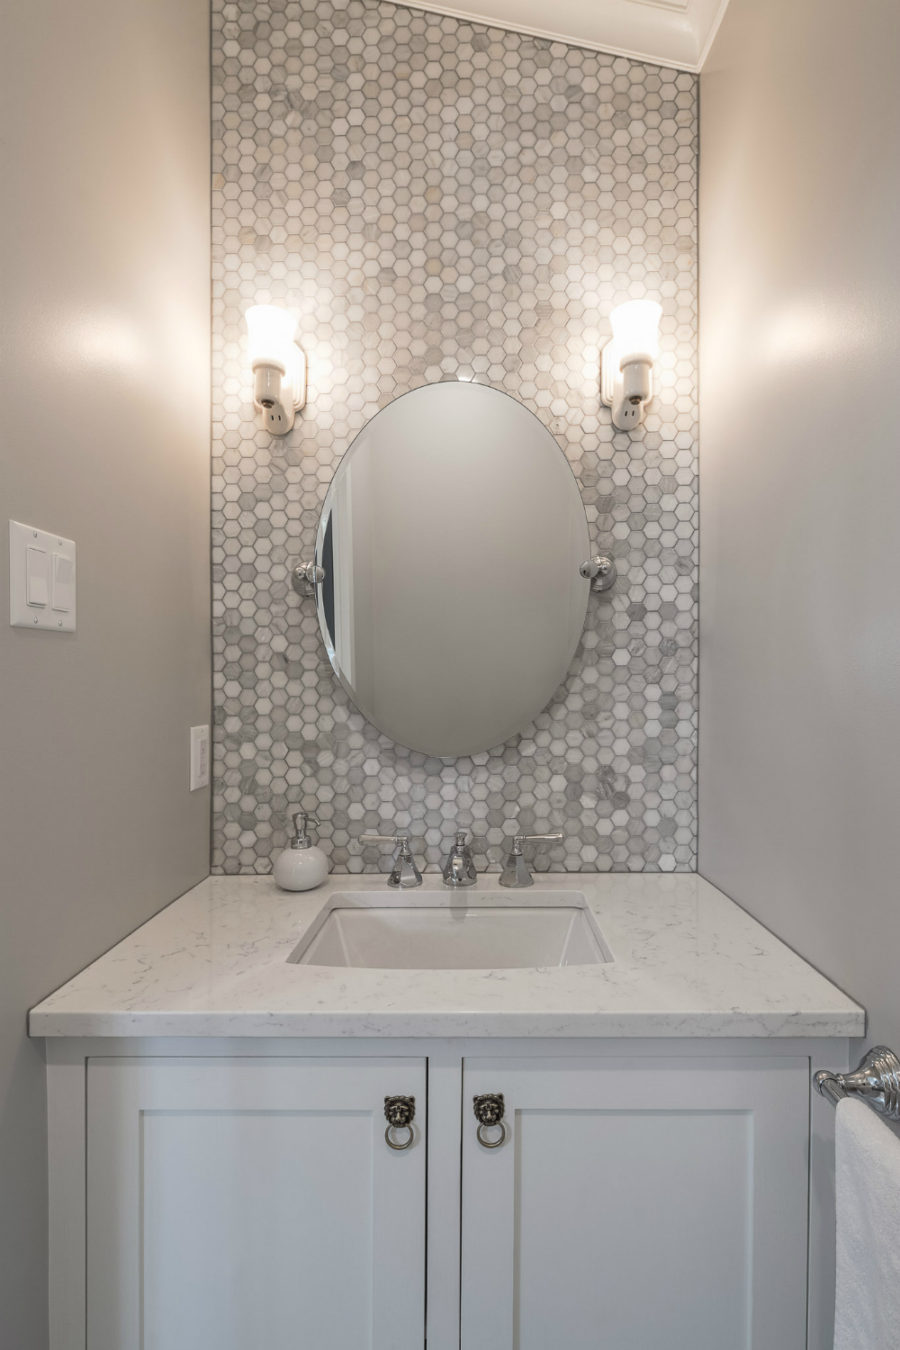 30 Great Pictures And Ideas Of Neutral Bathroom Tile: Unique Powder Rooms To Inspire Your Next Remodeling